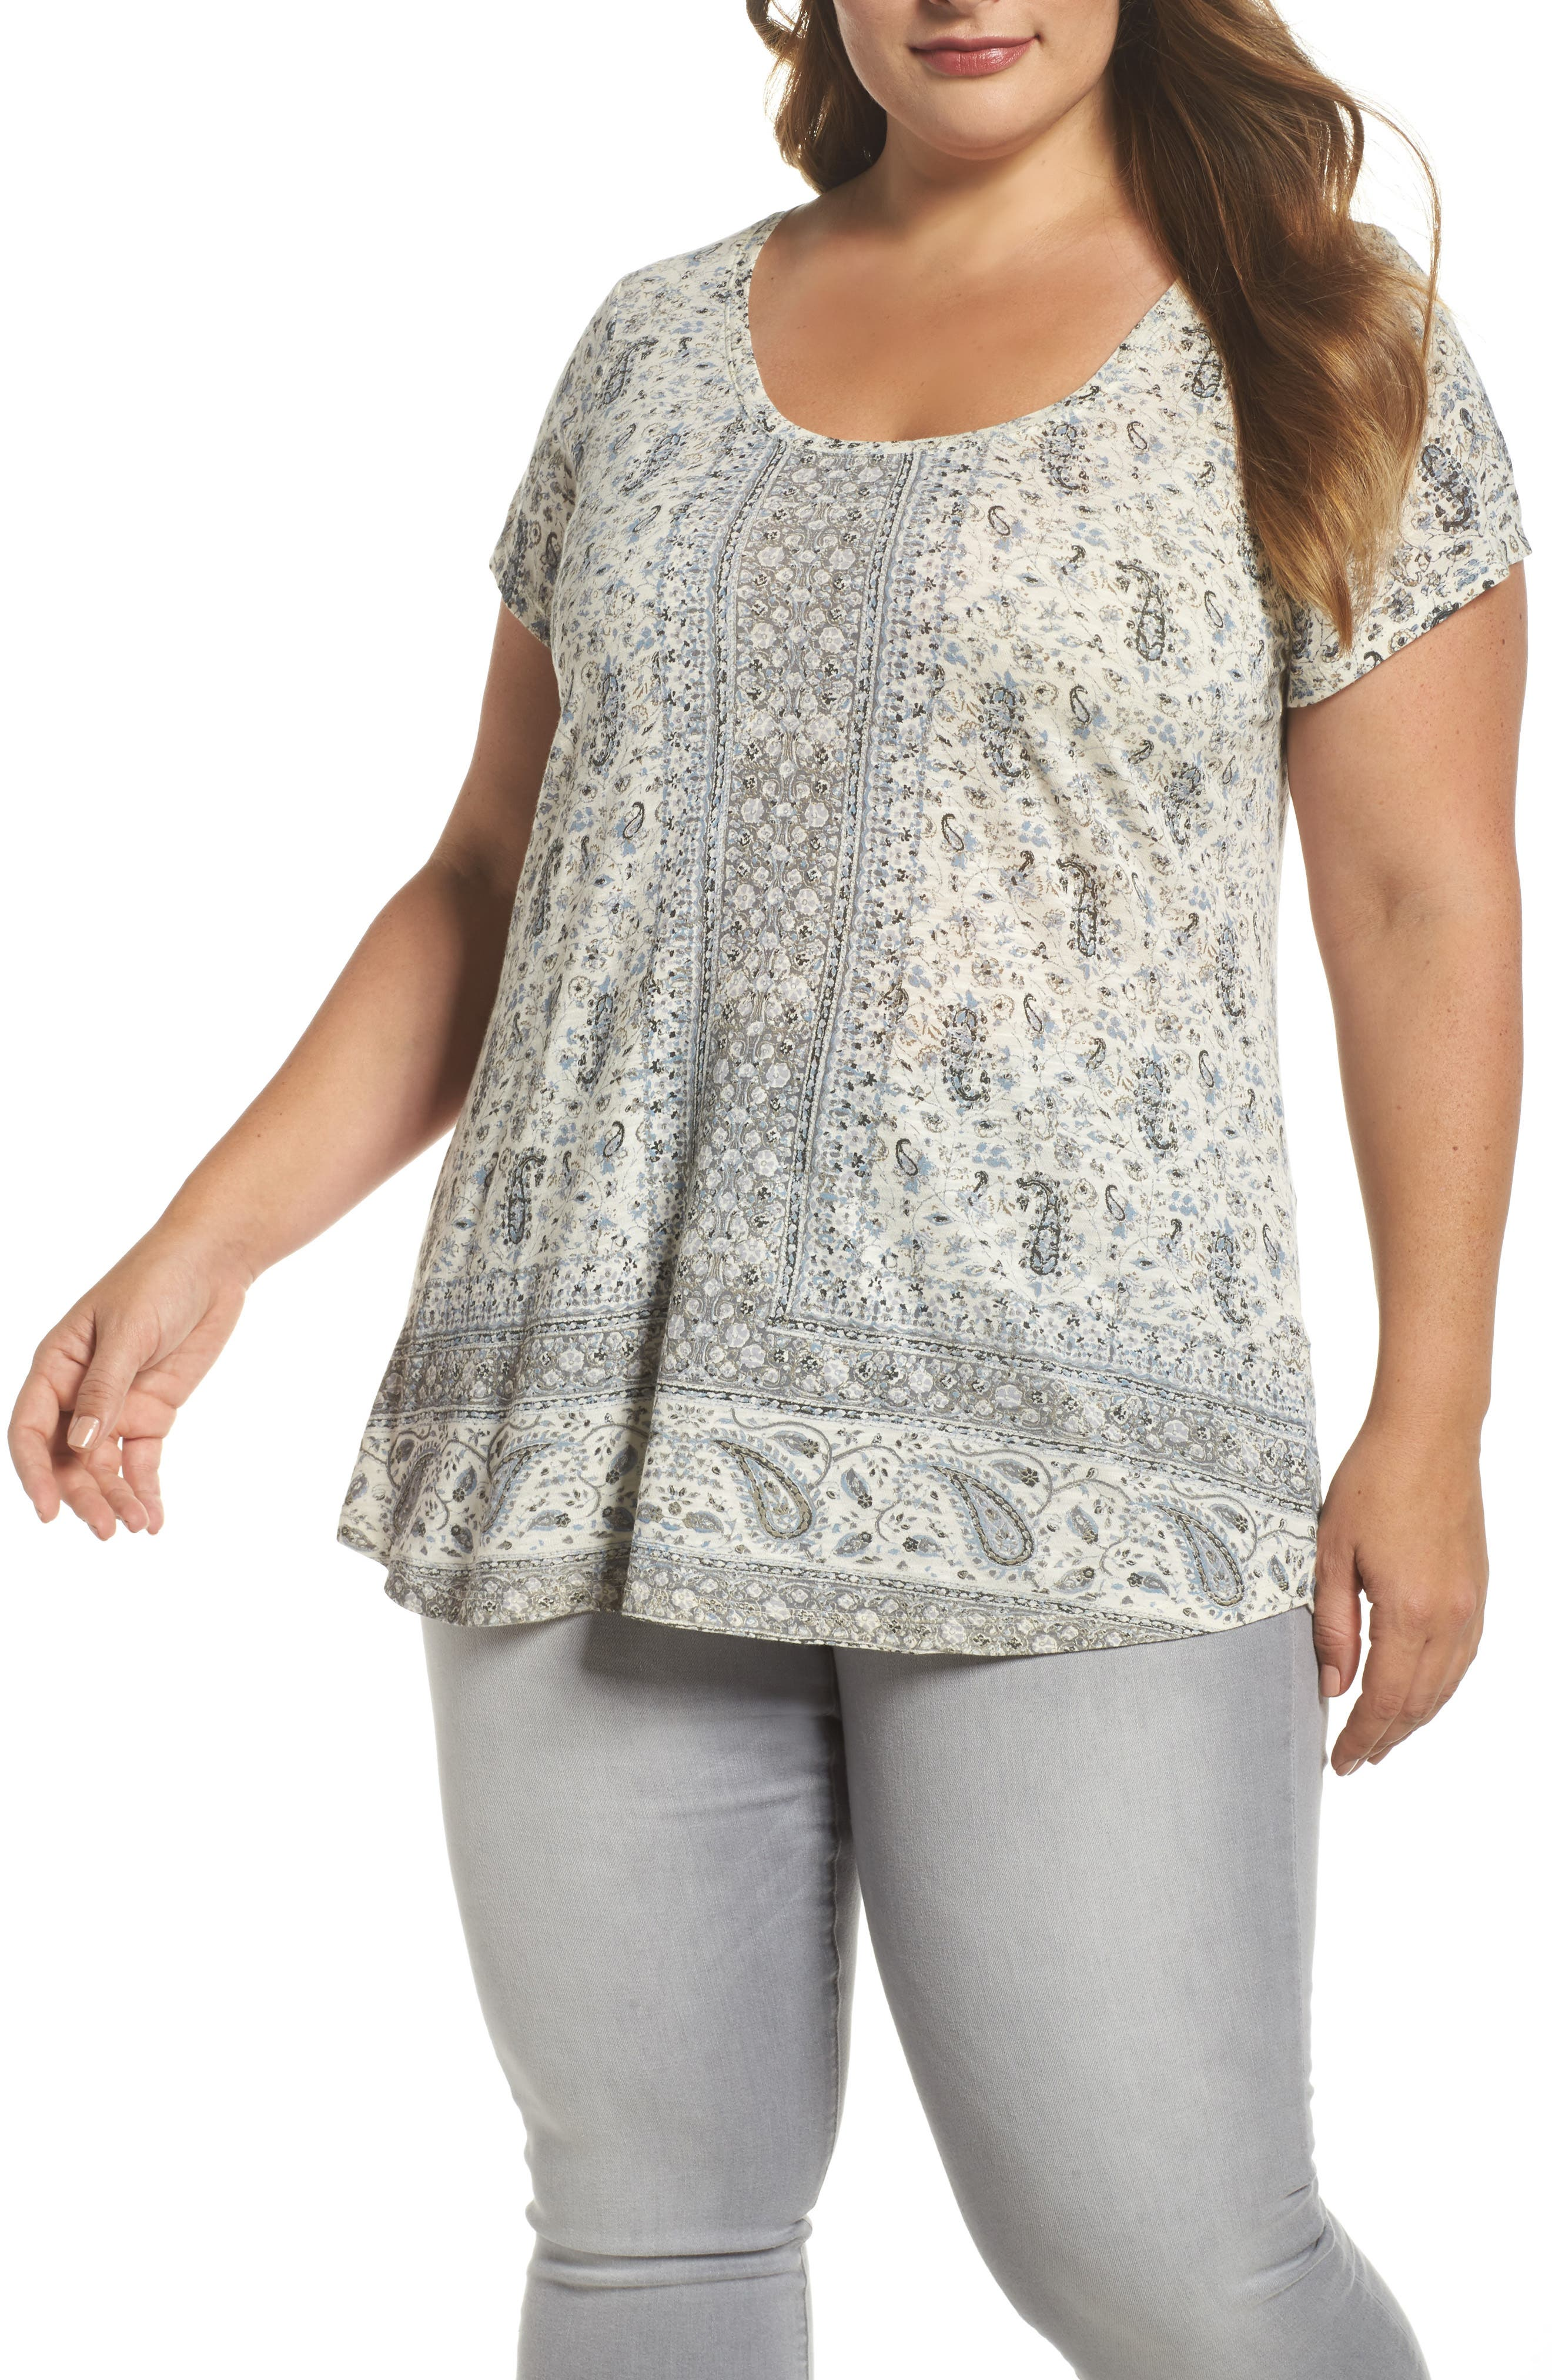 Alternate Image 1 Selected - Lucky Brand Erun Print Tee (Plus Size)